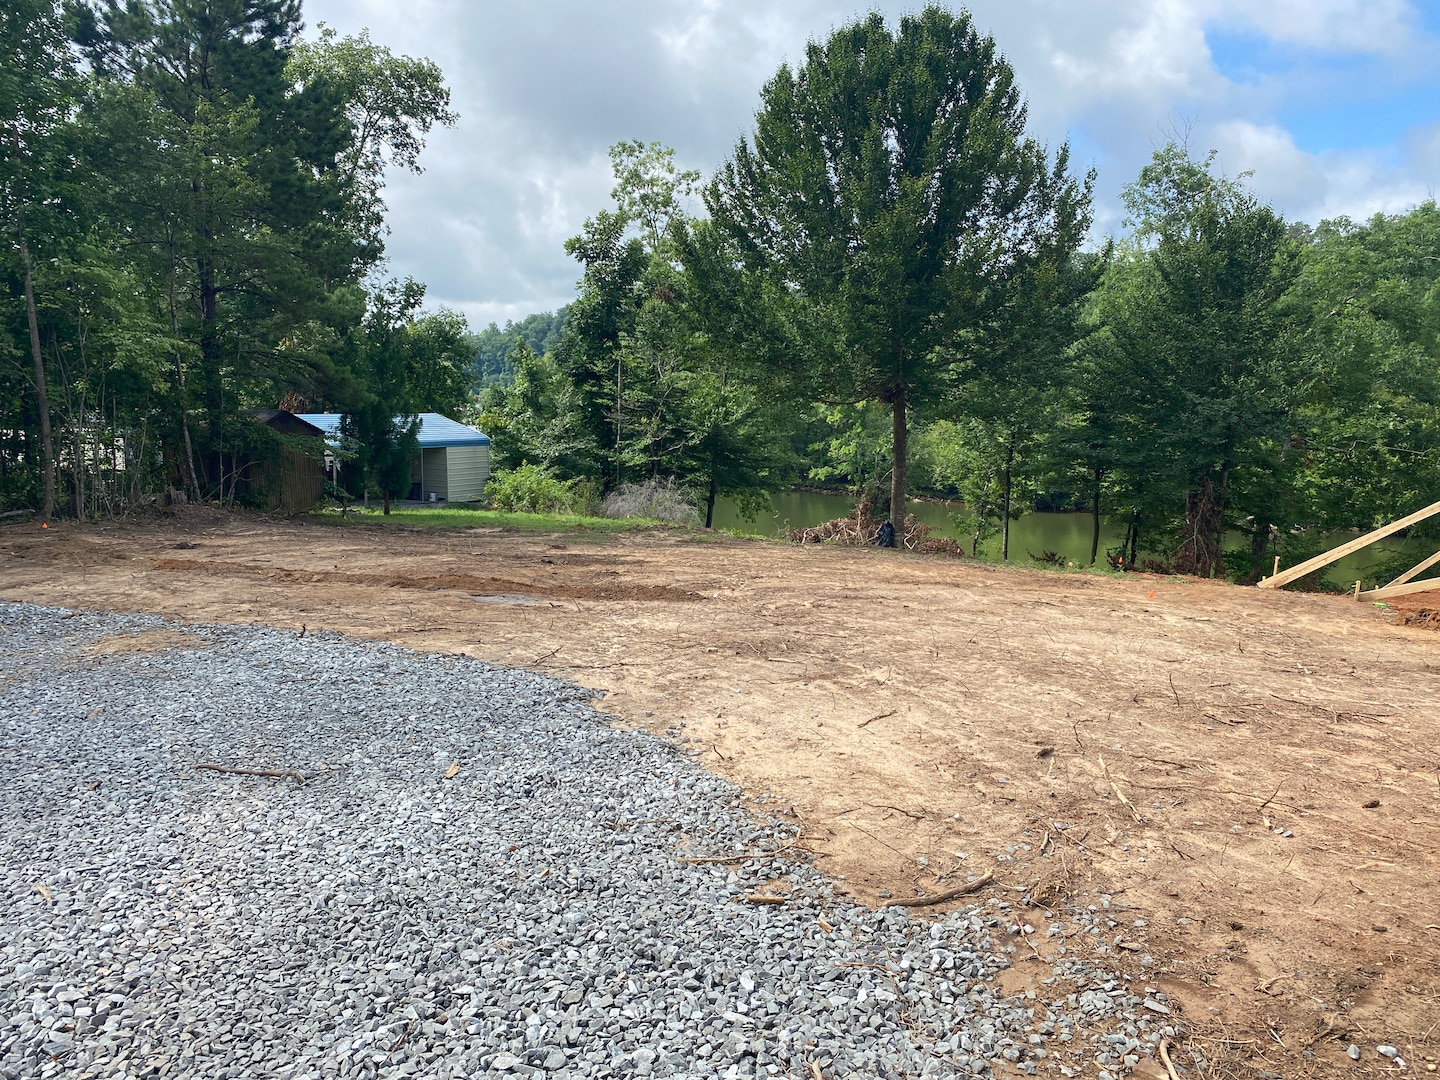 House foundation and concrete footers